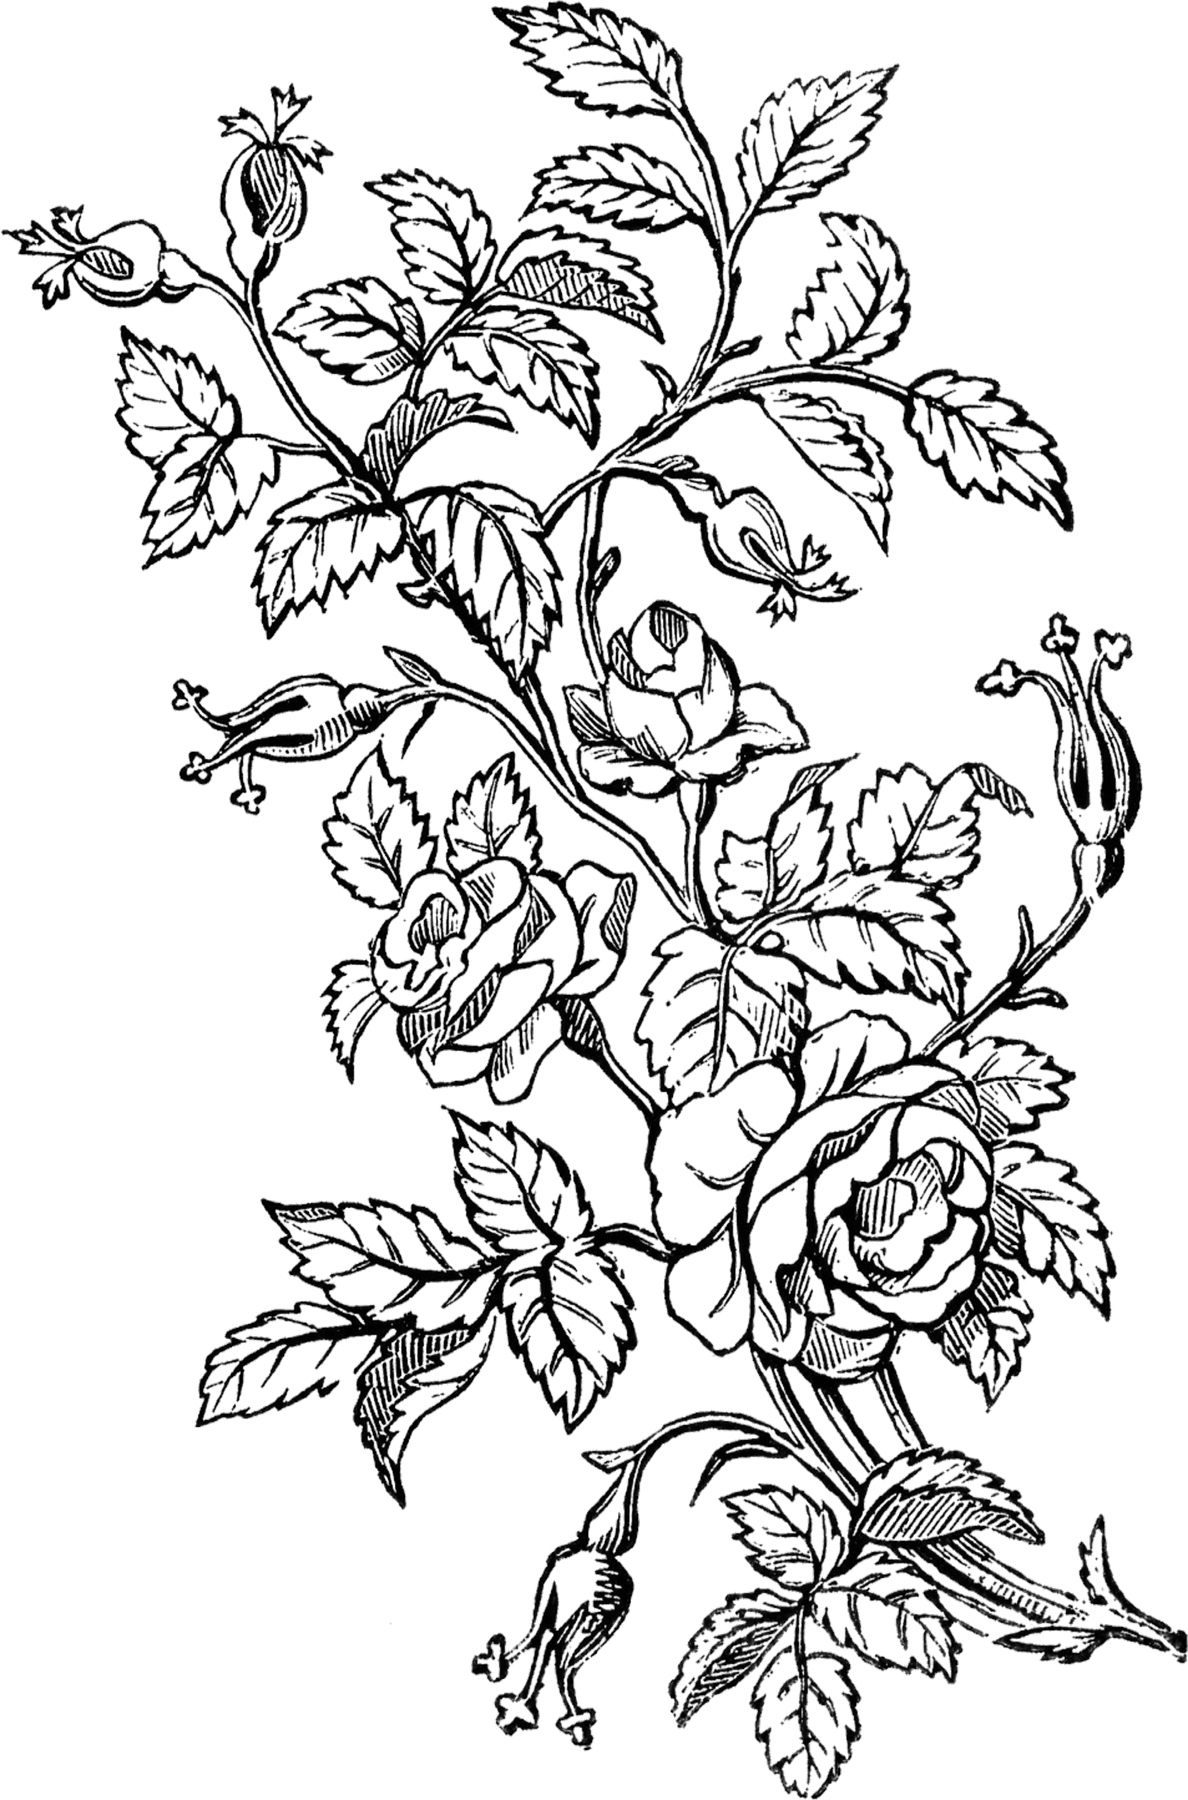 http://thegraphicsfairy.com/wp-content/uploads/2014/06/Ornamental-Roses-Design-GraphicsFairy.jpg